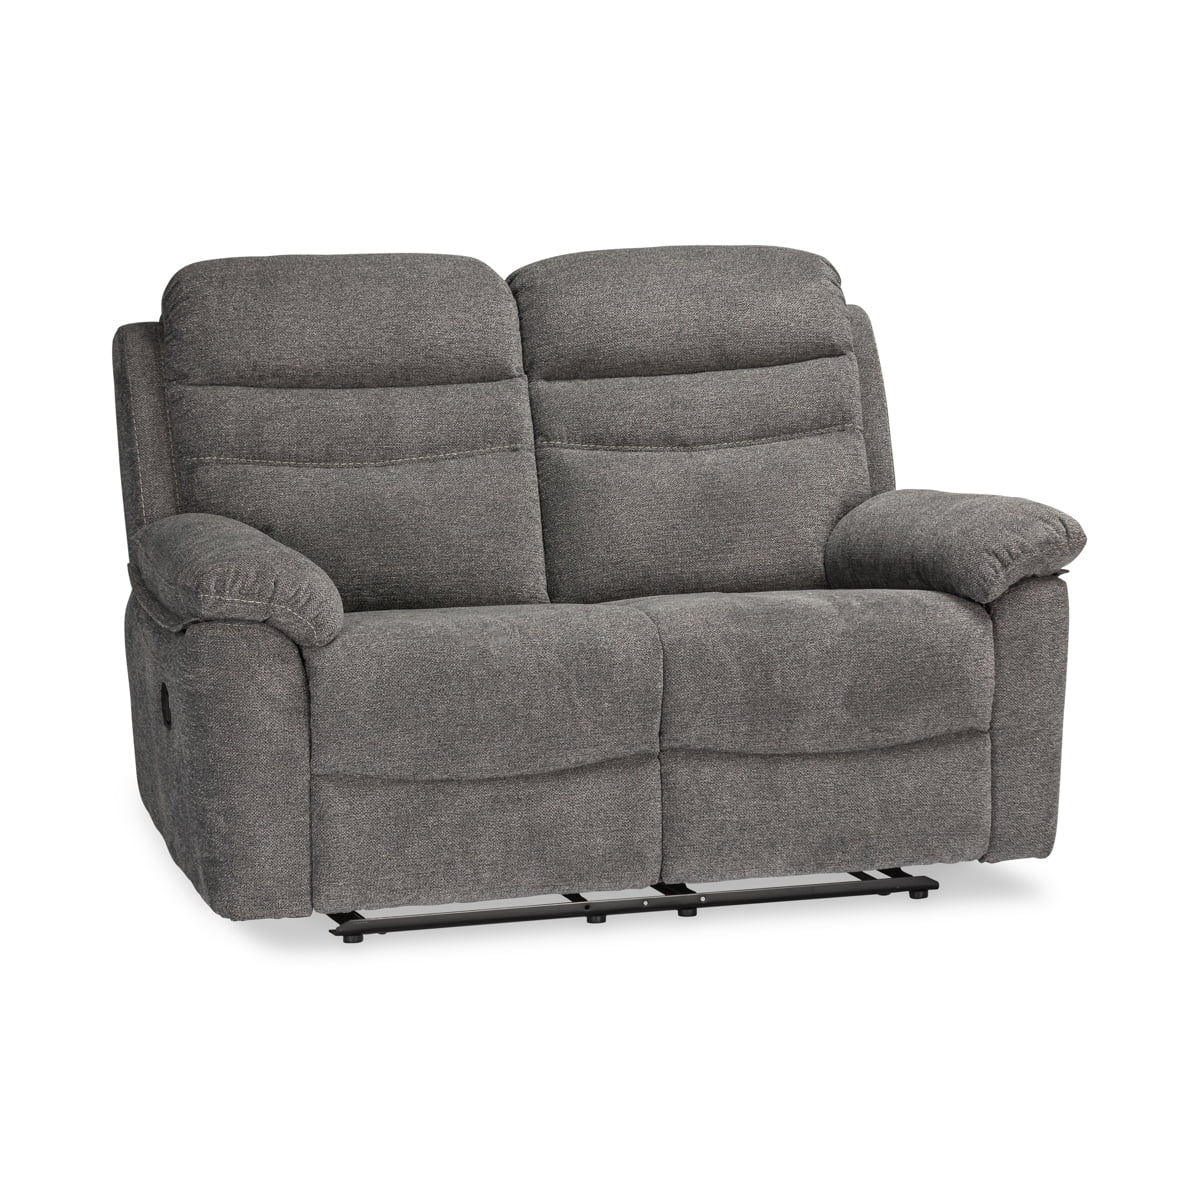 Bellmore Grey 2 Seater Recliner